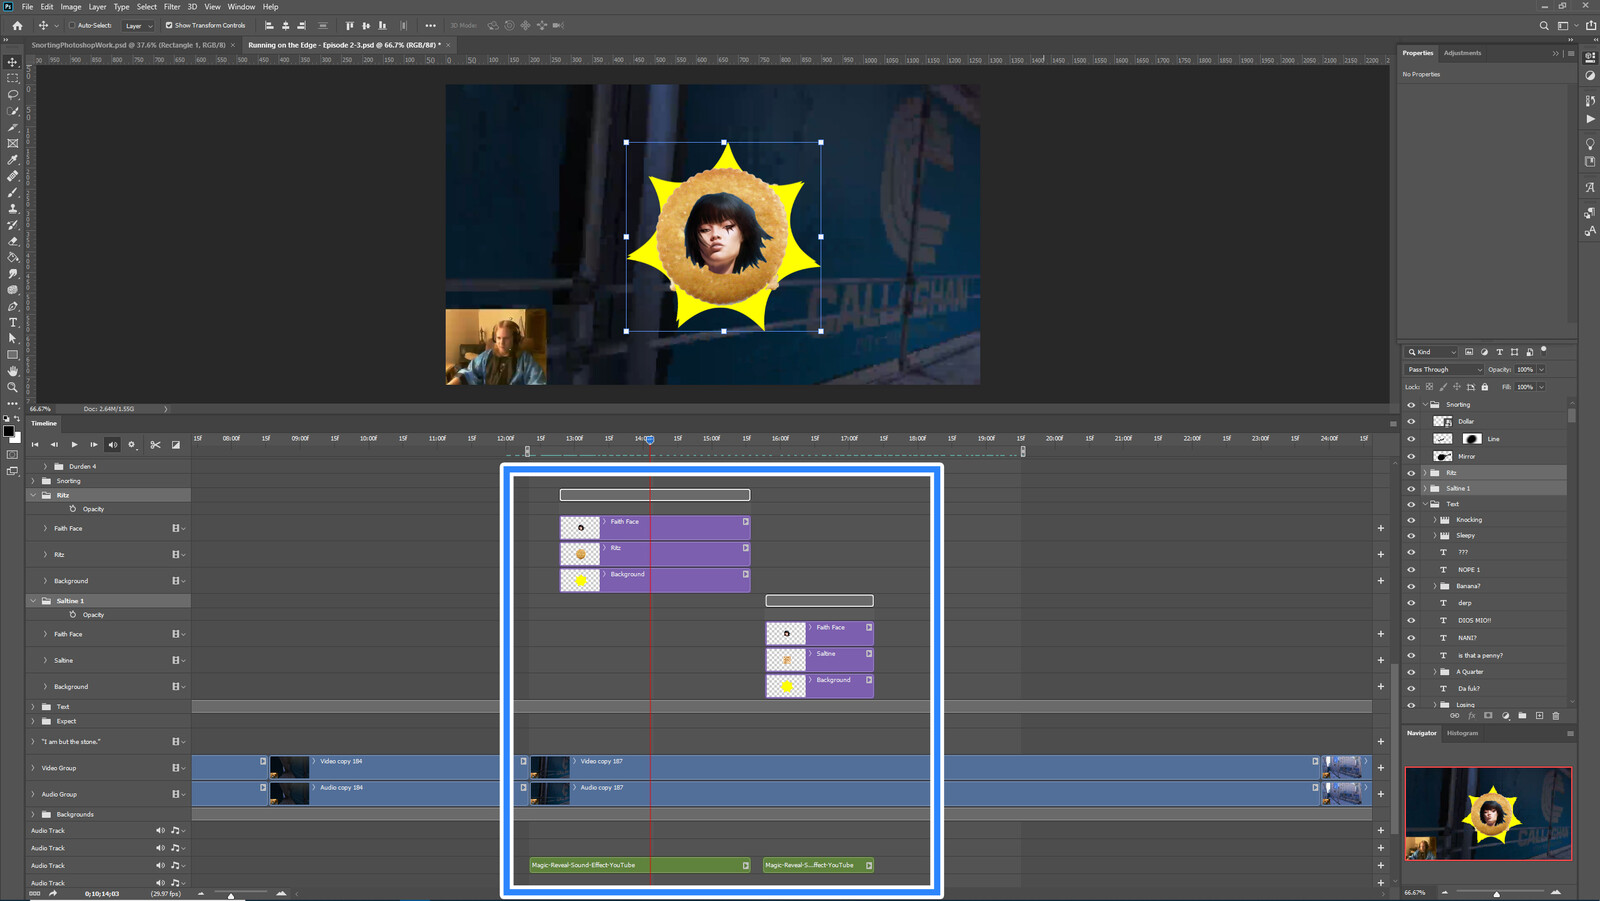 """The """"Faith Crackers"""" visual effect within Photoshop video editor"""